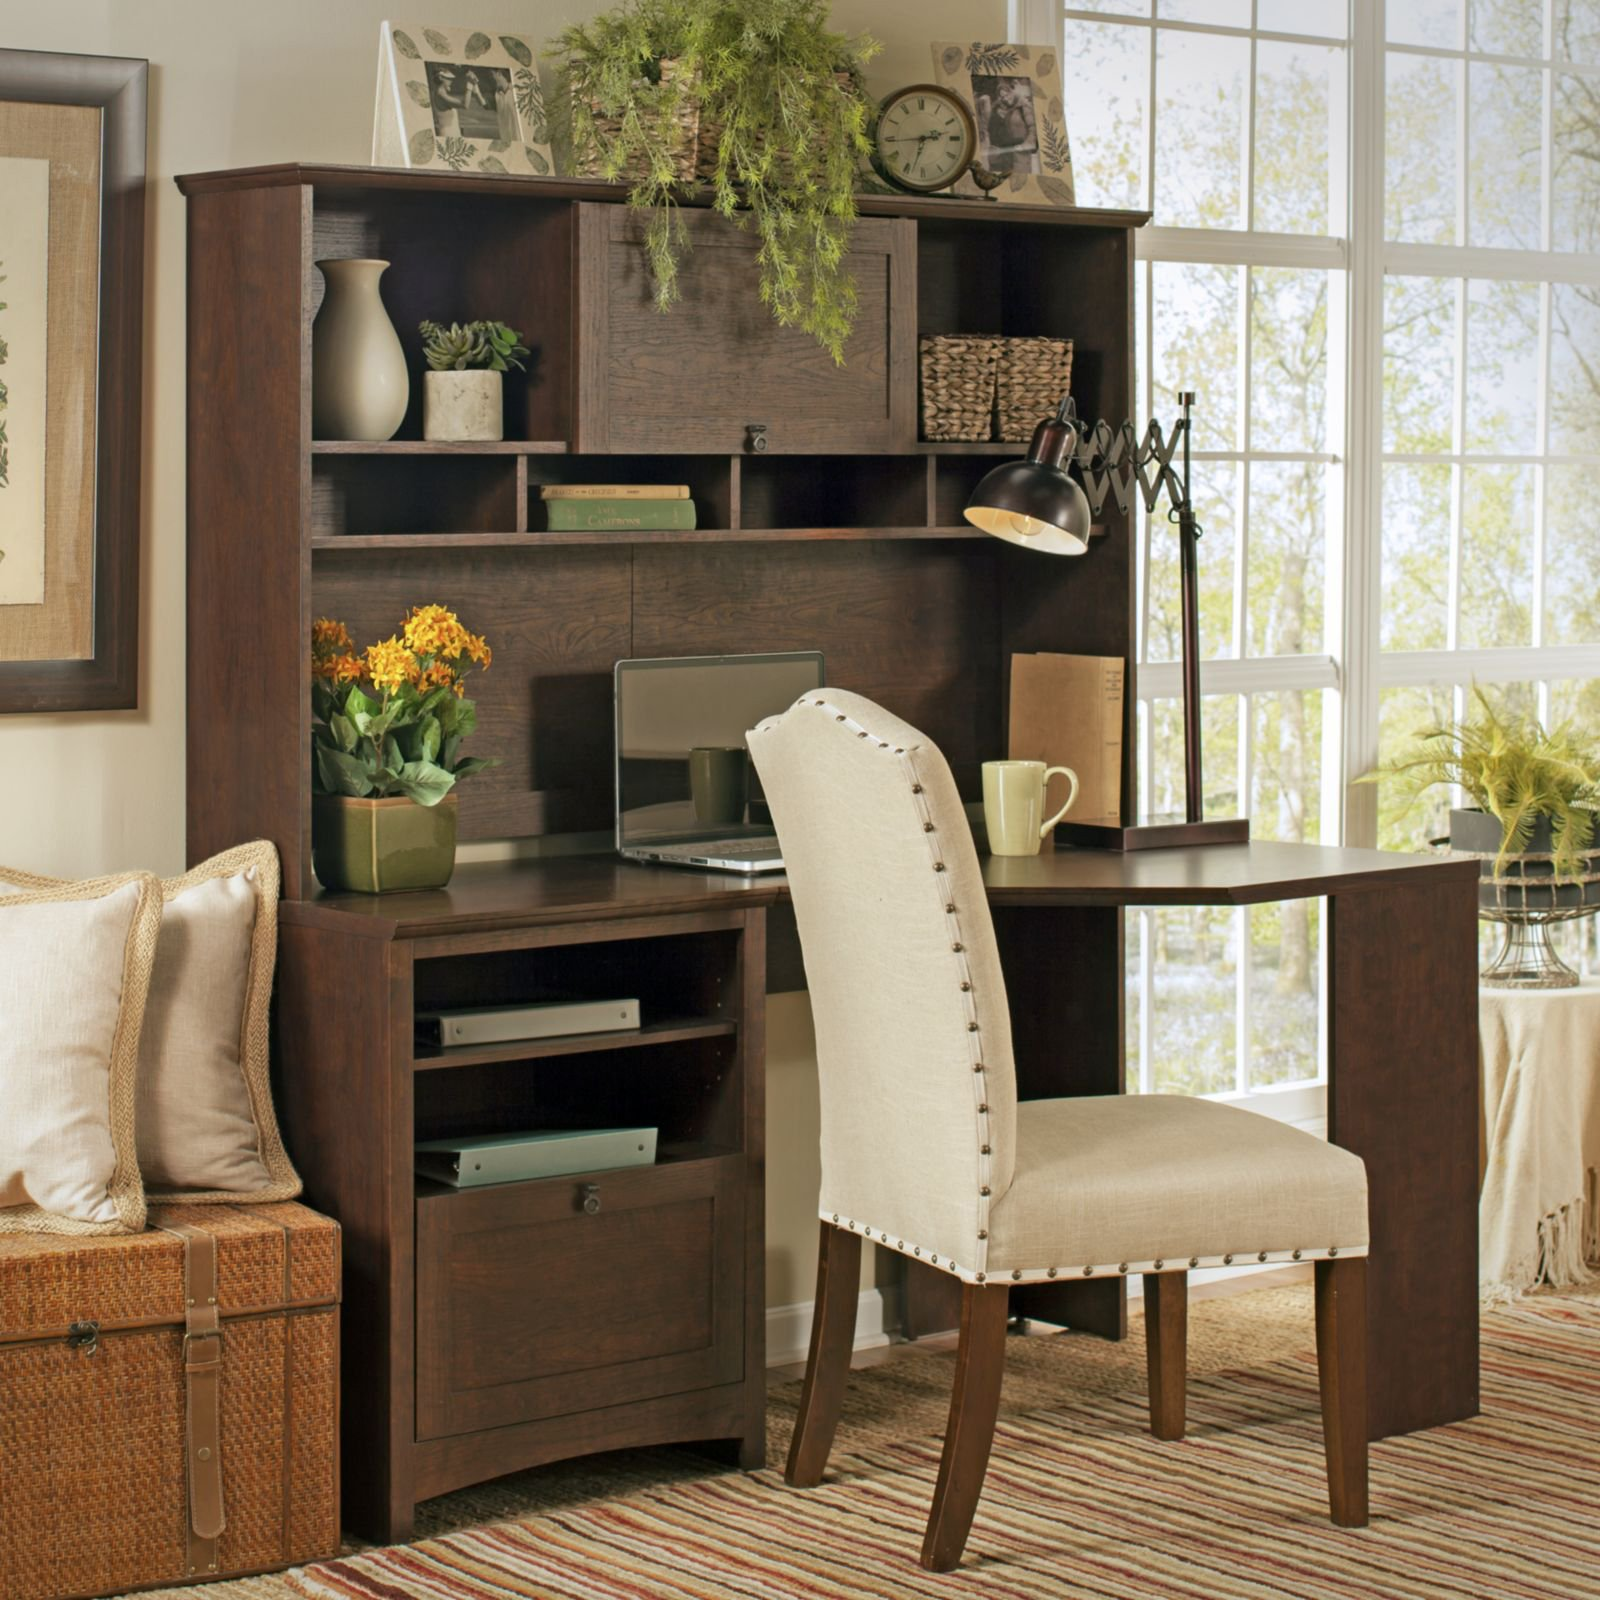 Bush Furniture Buena Vista 60 in. Corner Desk with Hutch - Madison Cherry